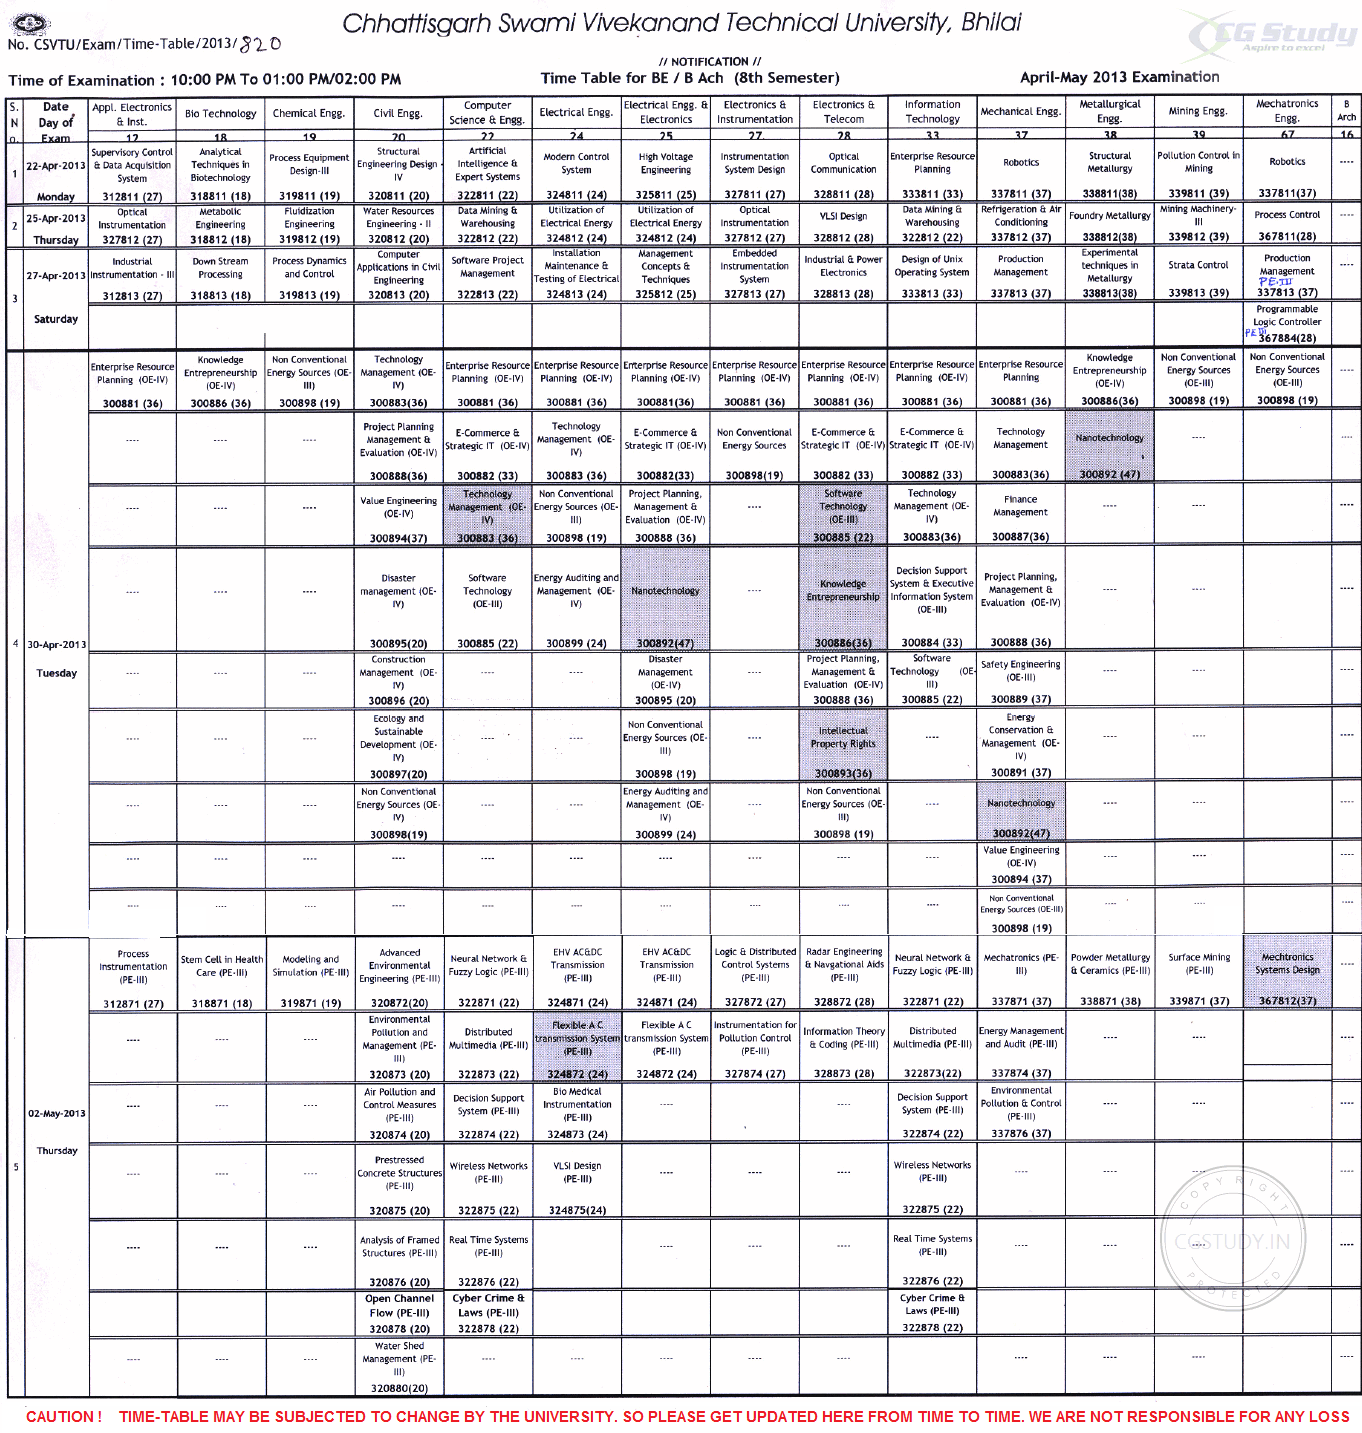 Csvtu be time table april may 2013 cg study for Rgpv time table 8 th sem